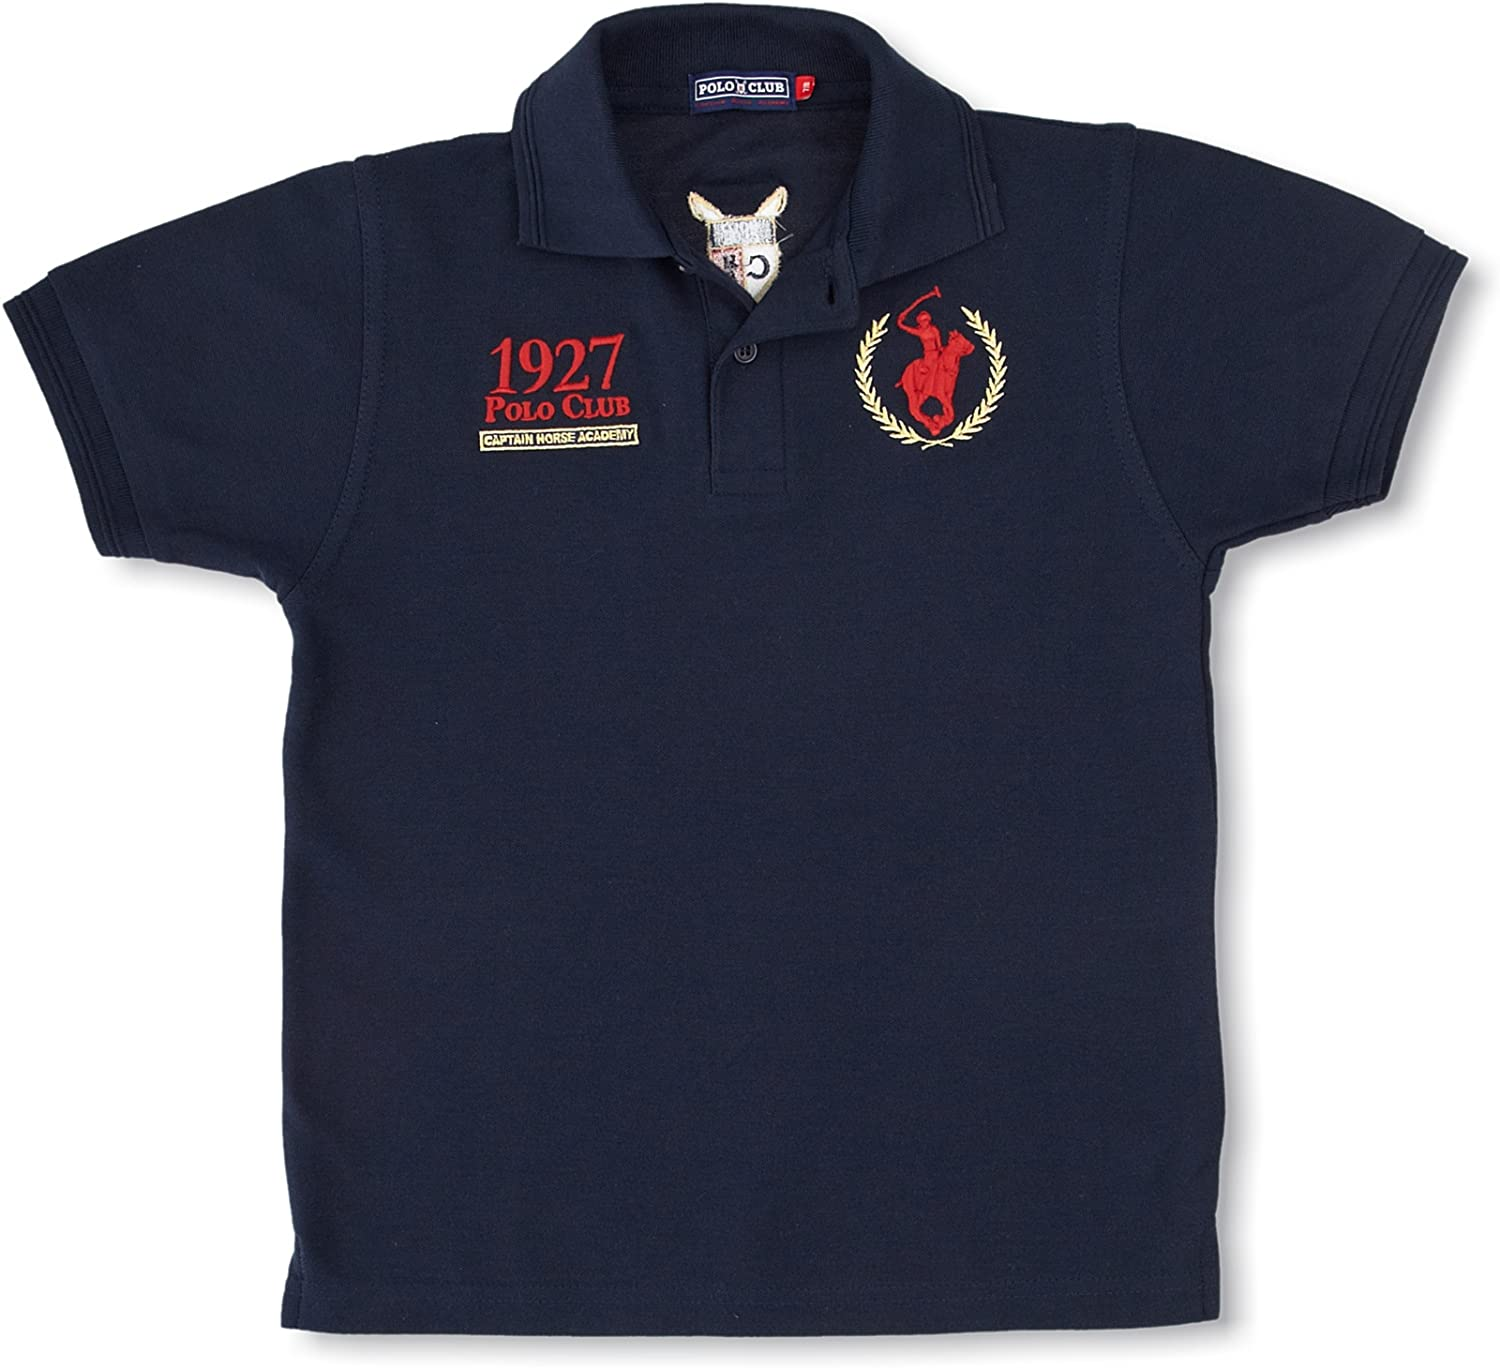 POLO CLUB Captain Horse Academy Polo Missouri Azul Marino 3-4 años ...